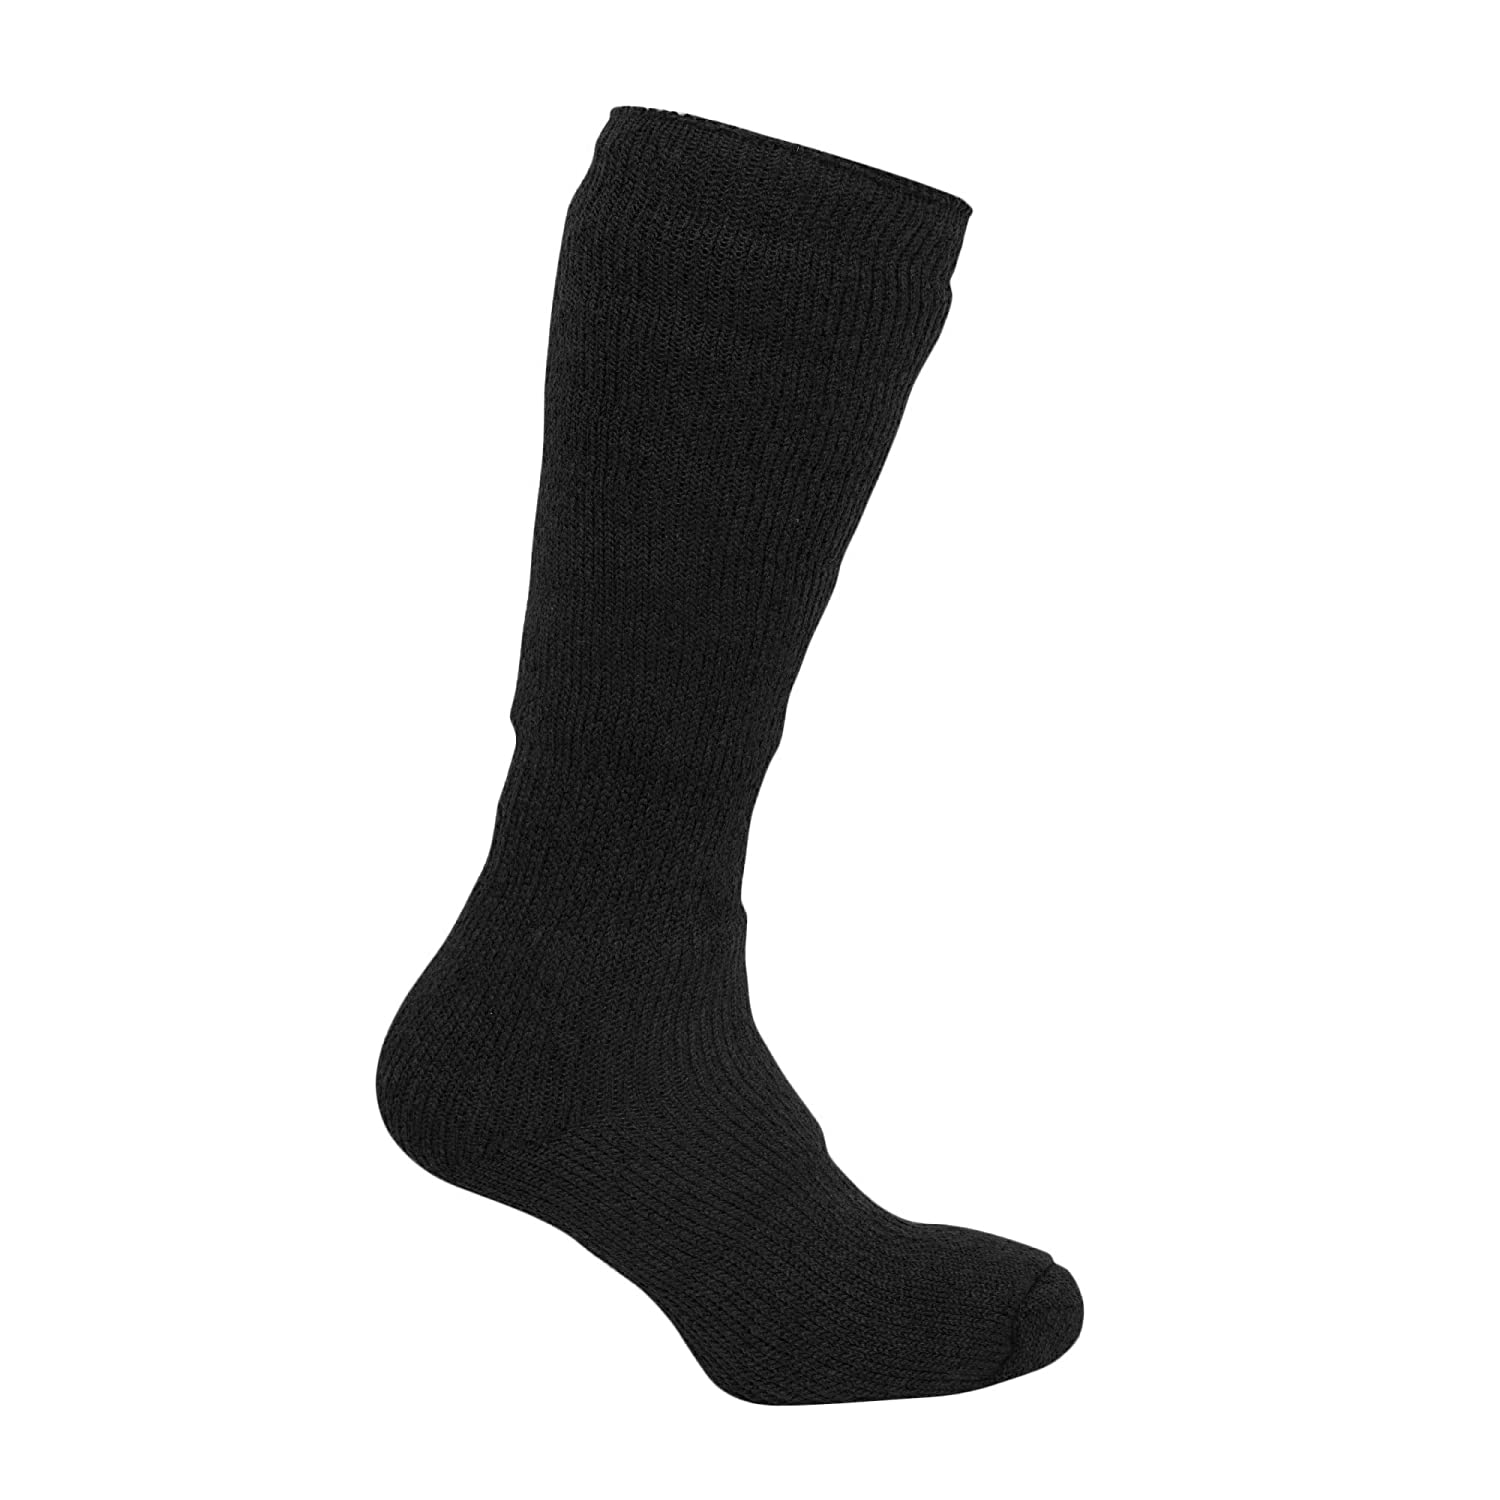 Heat Holders Herren Socken / Thermo-Socken, 1 Paar